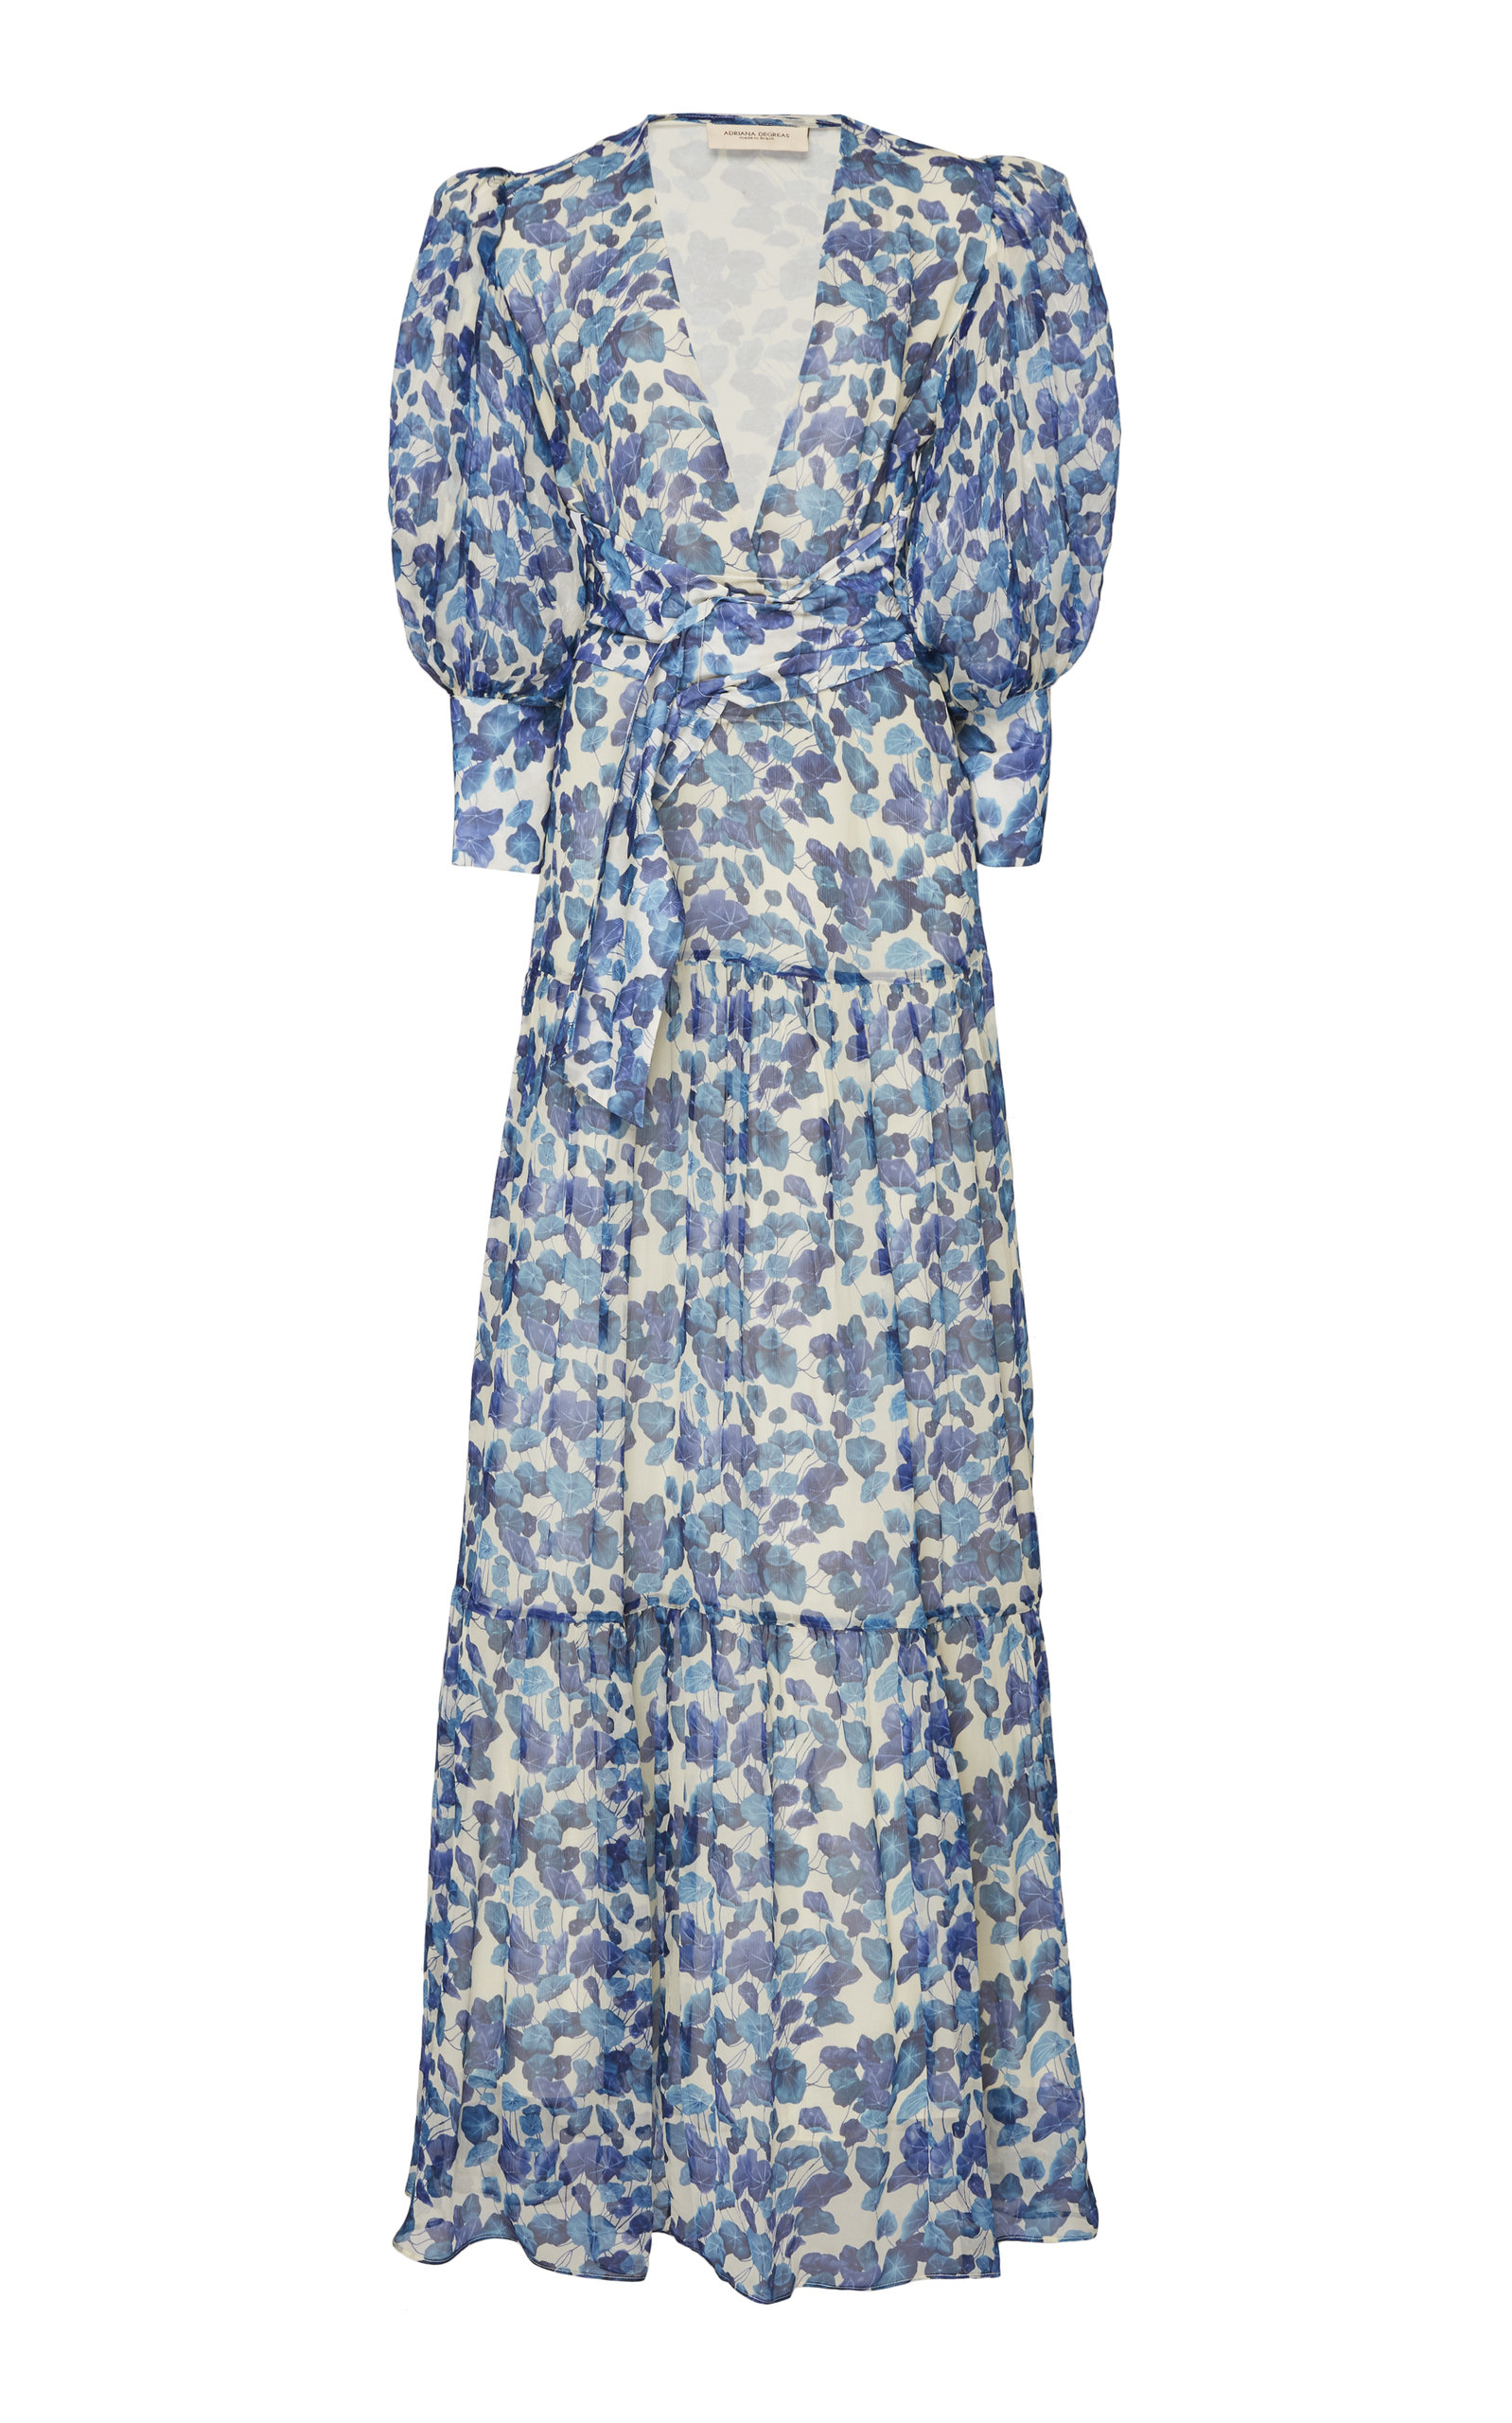 Buy Adriana Degreas Floral-Print Silk-Chiffon Maxi Dress online, shop Adriana Degreas at the best price